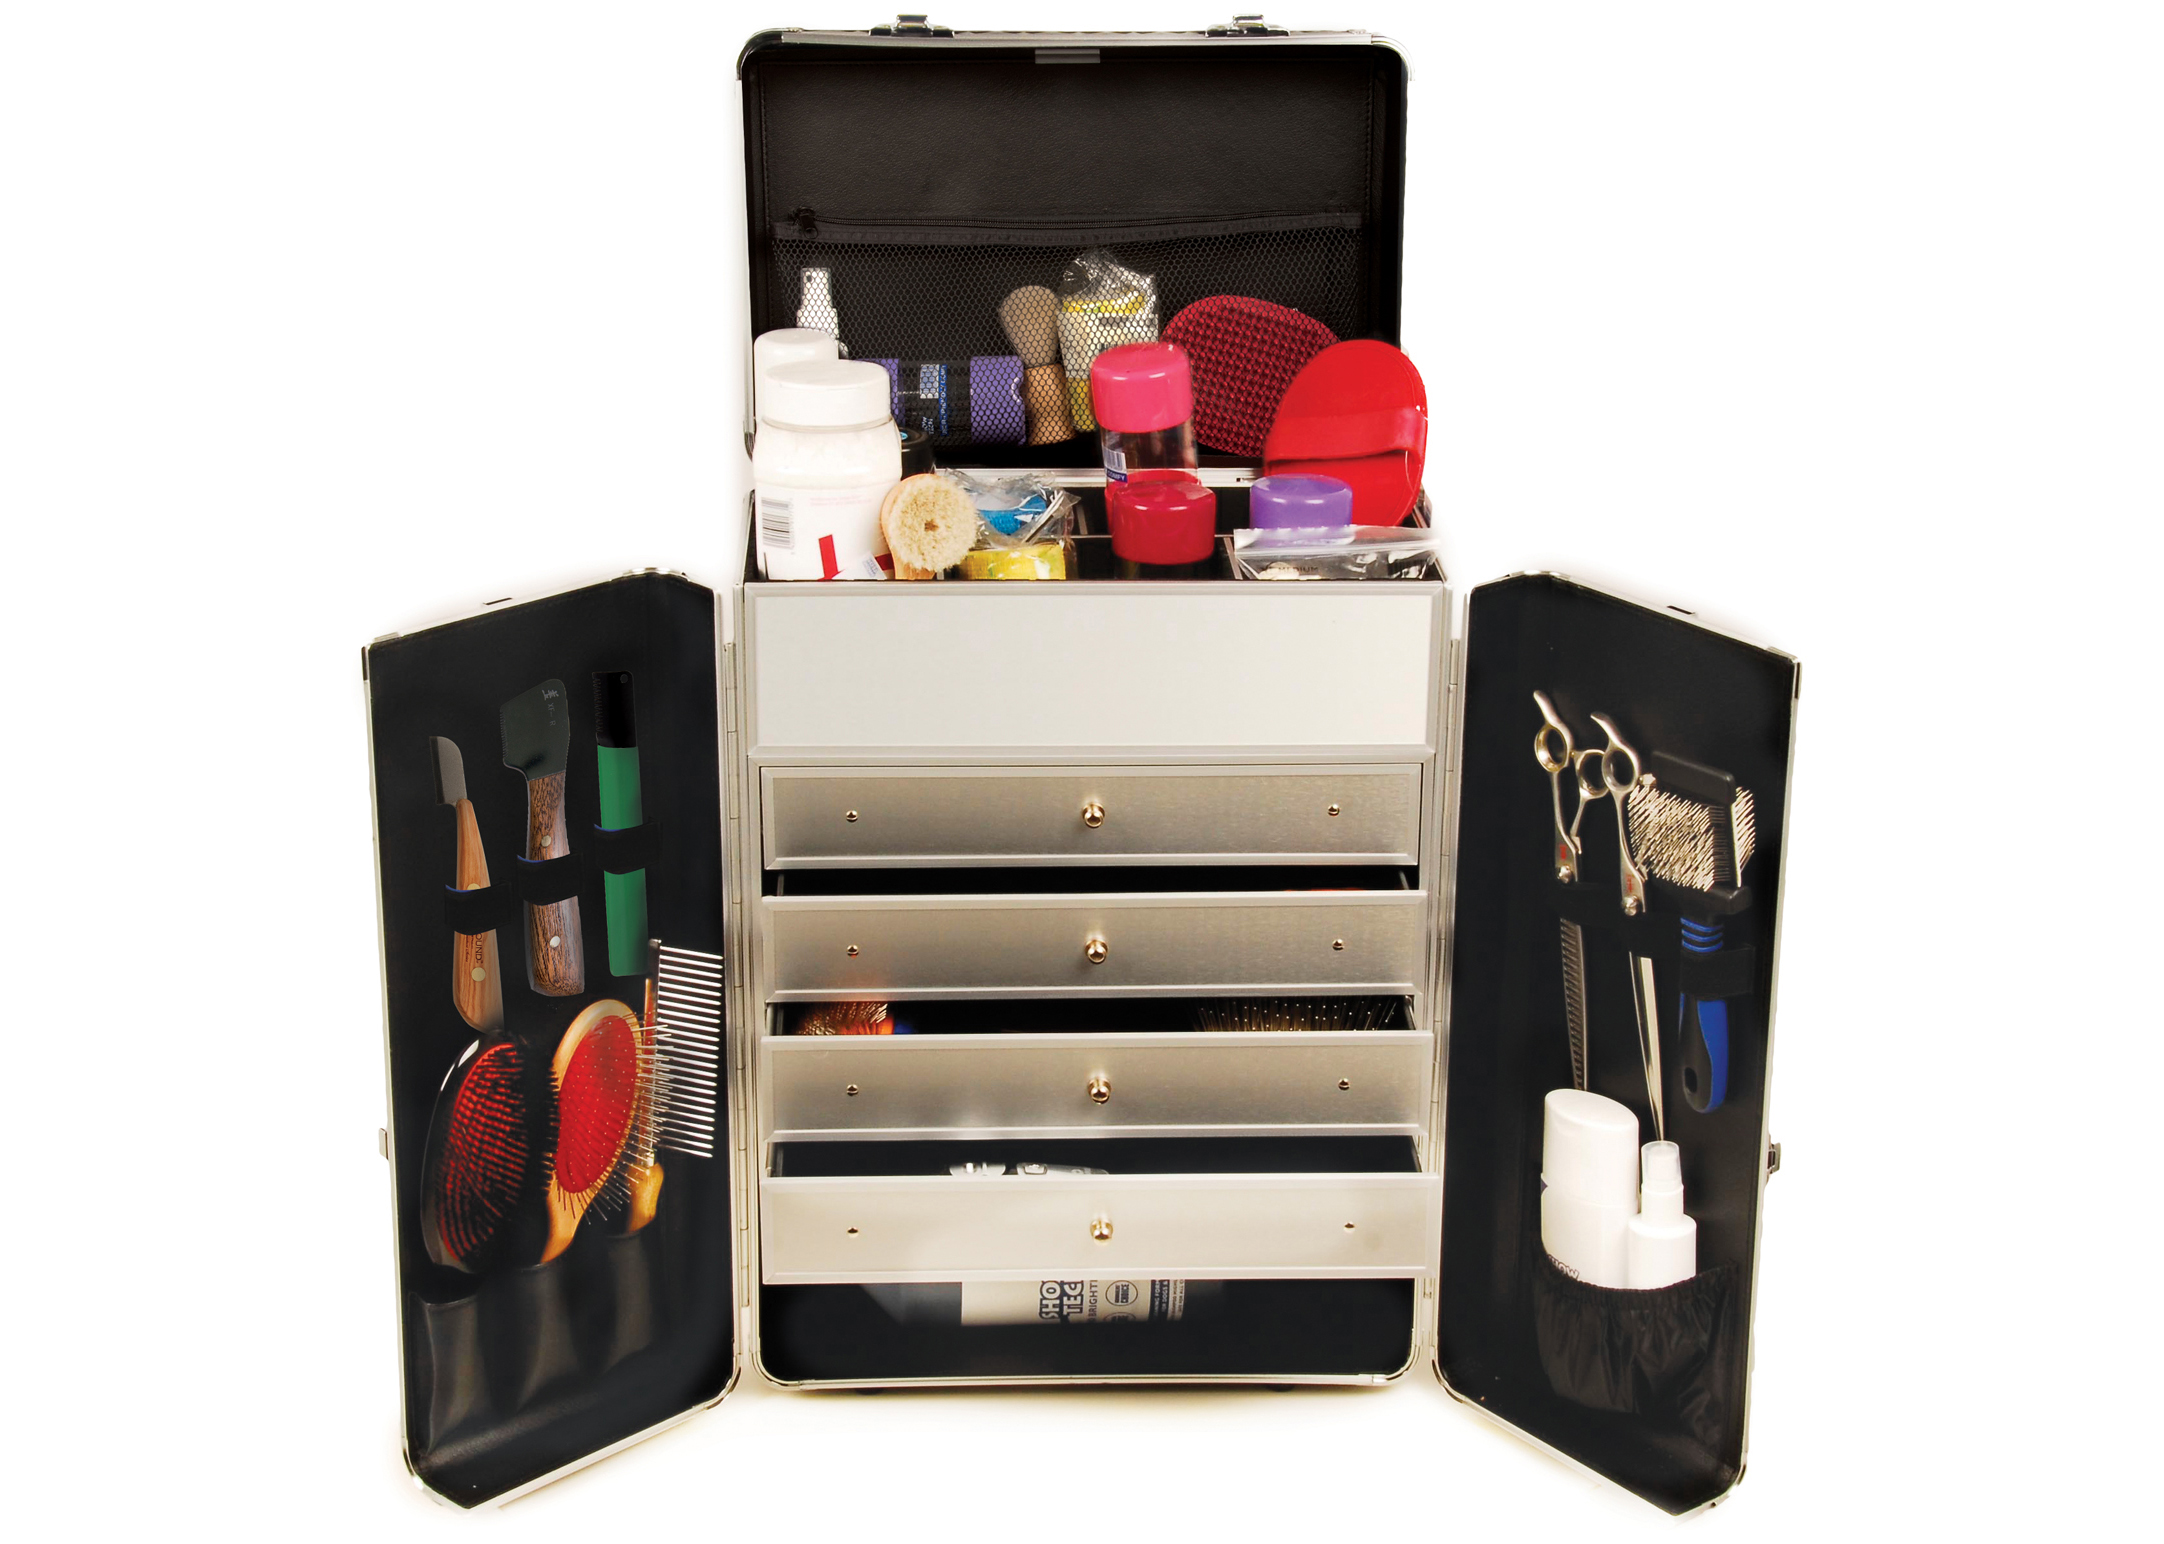 Groom-X Grooming Case Deluxe with 2 Wheels and Telescopic Handle with Diamond ABS Panel Black